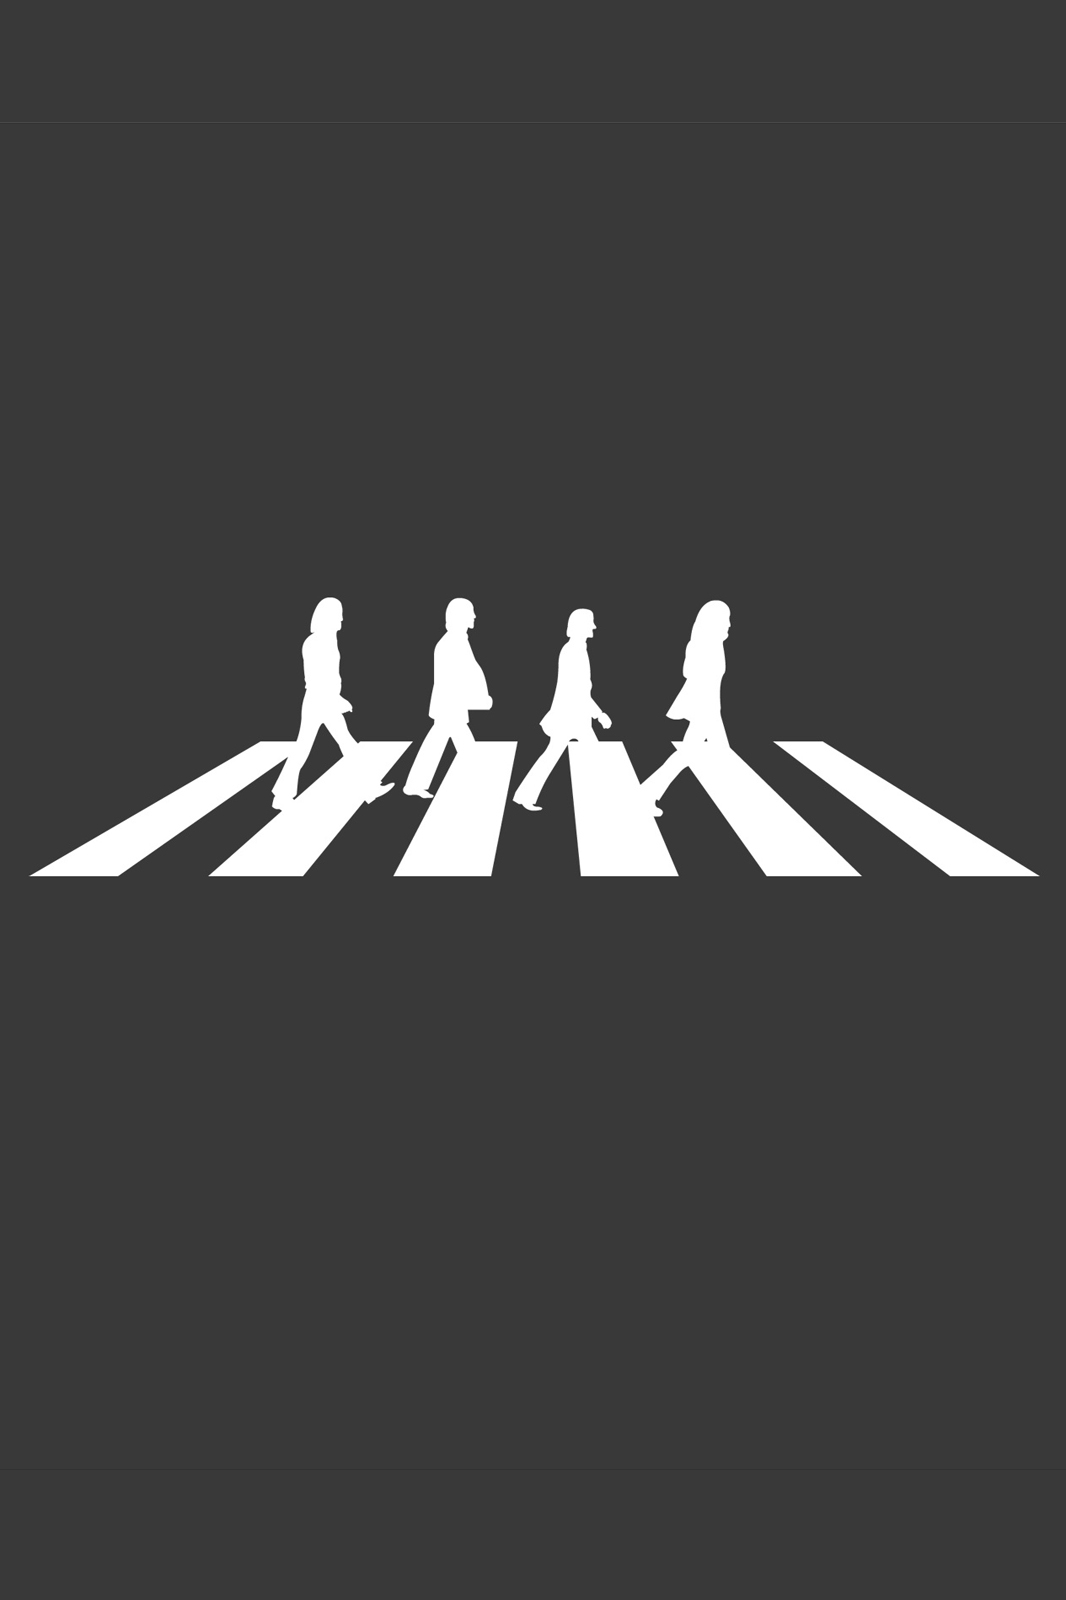 Abbey Road Wallpaper Hd Beatles Abbey Road Grey White Android Wallpaper